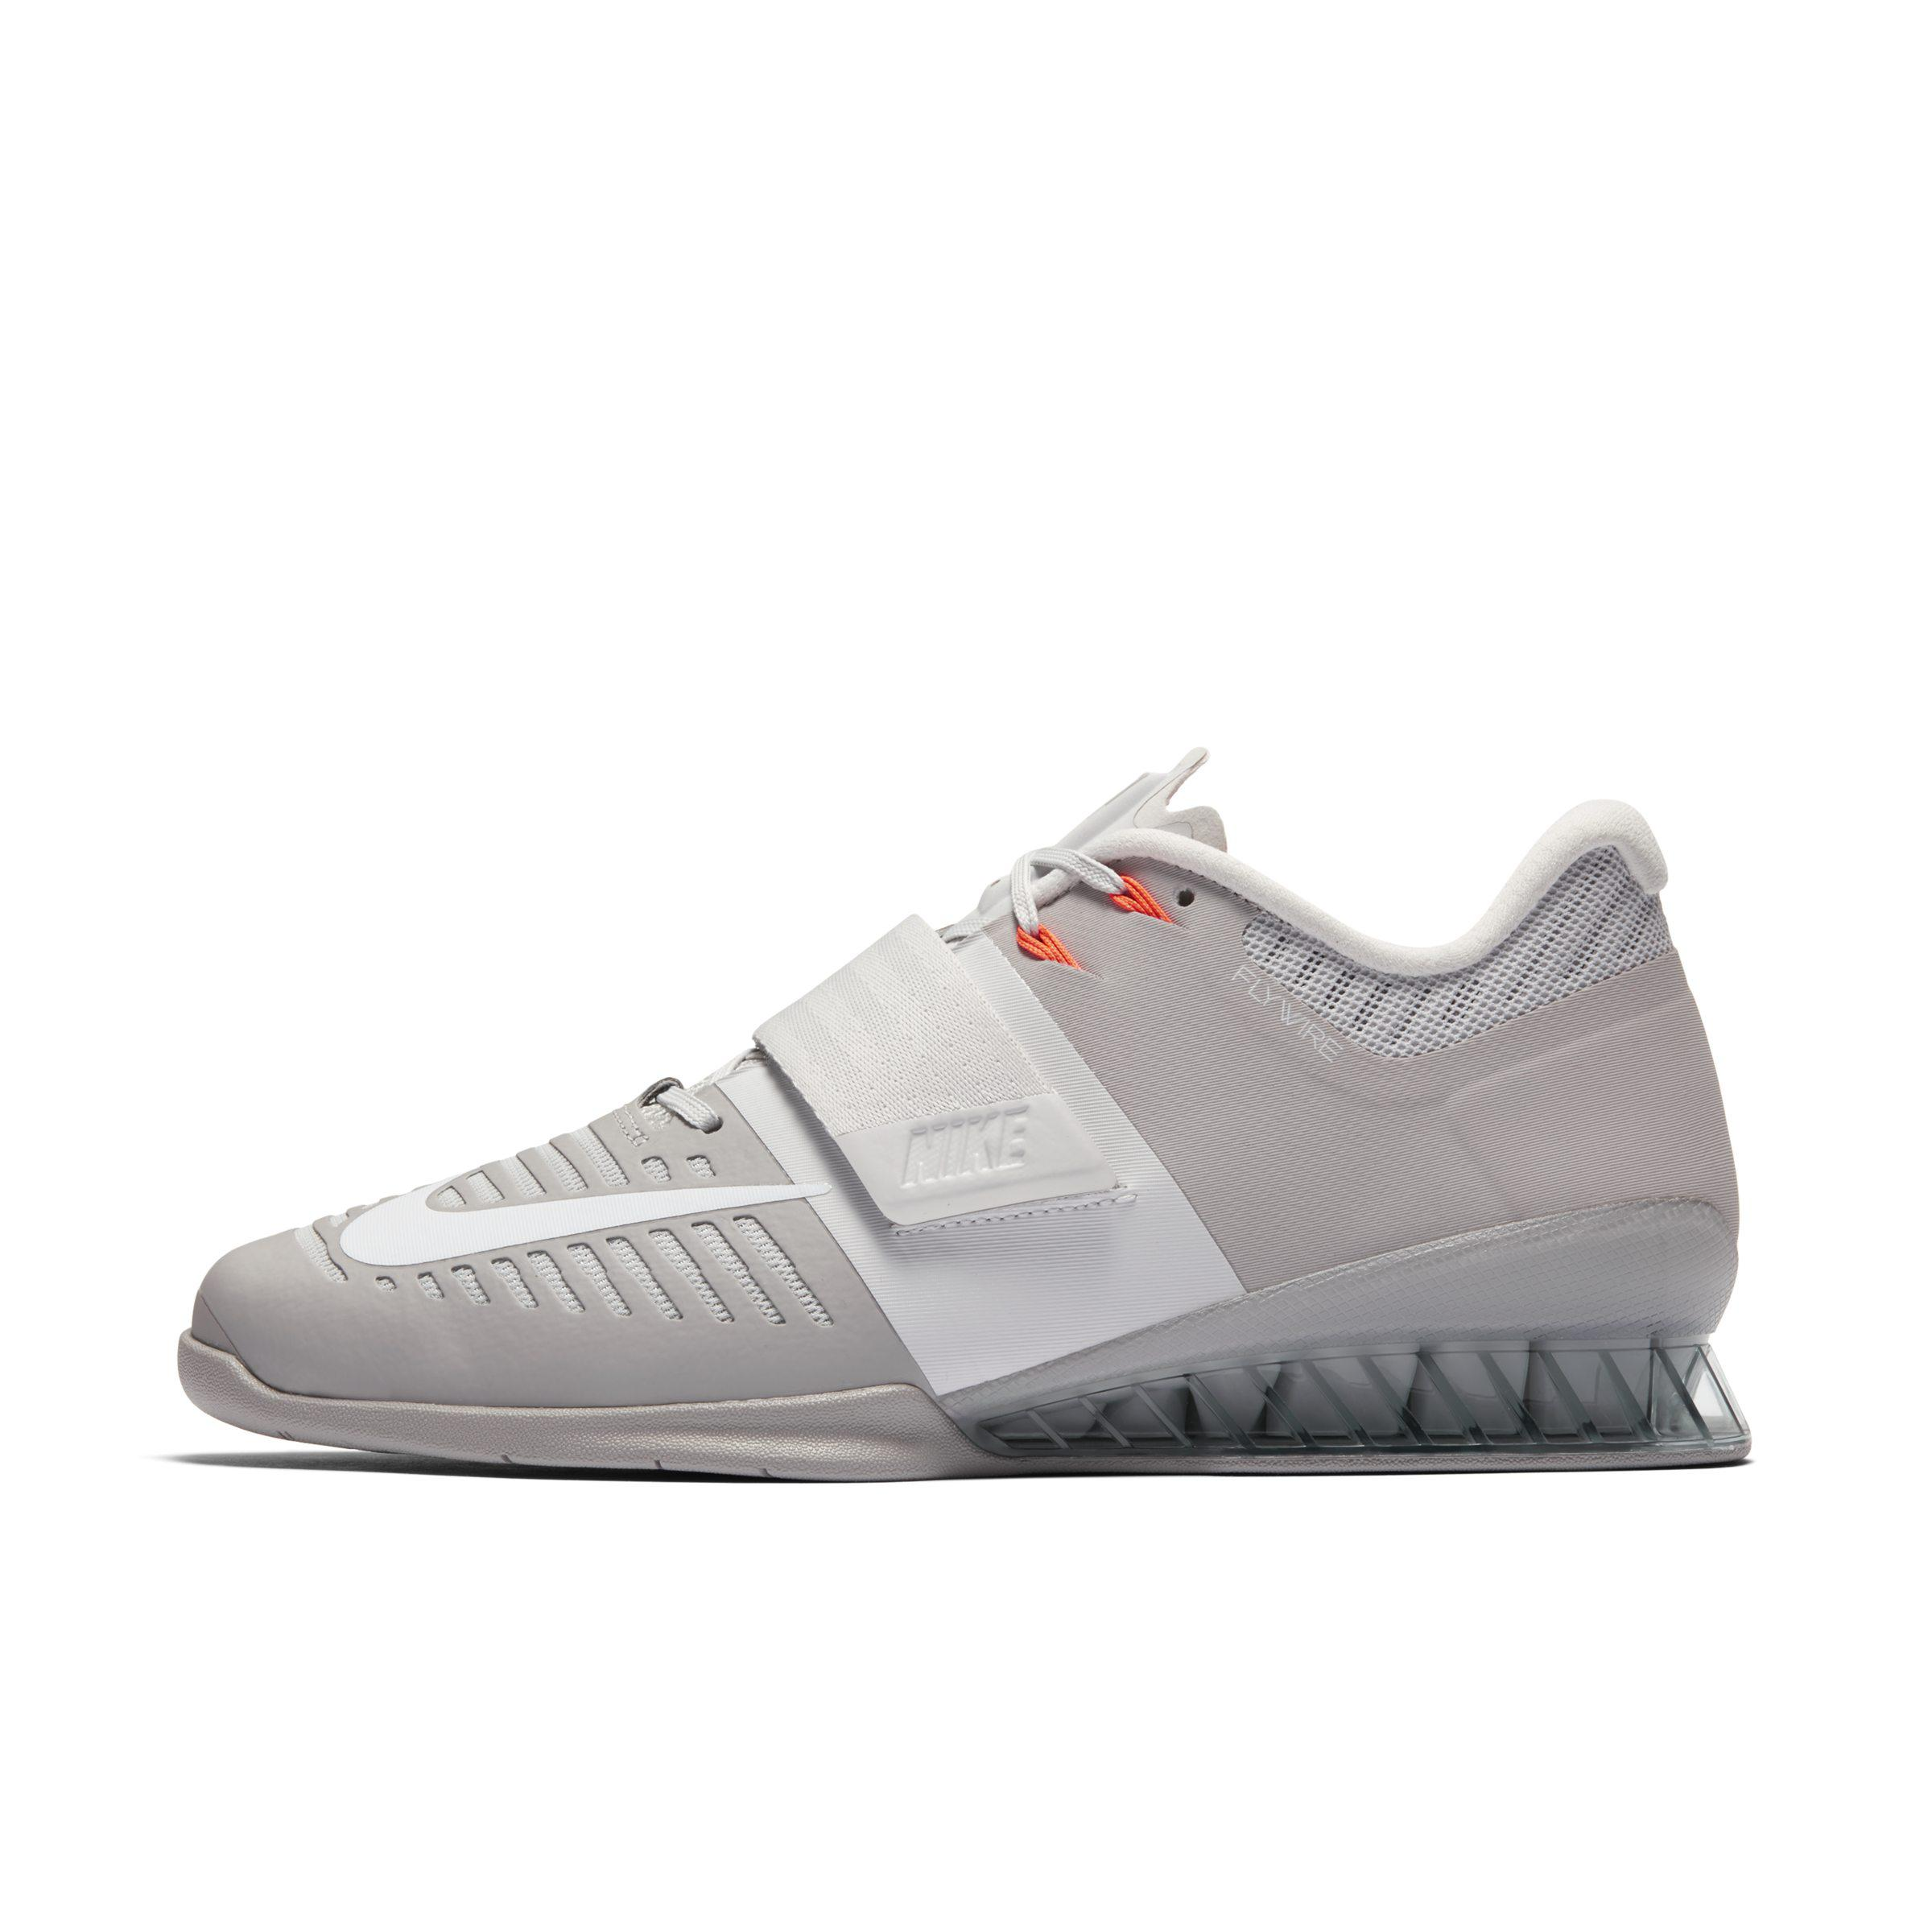 35b025e993c4 Nike Romaleos 3 Weightlifting powerlifting Shoe in Gray - Lyst